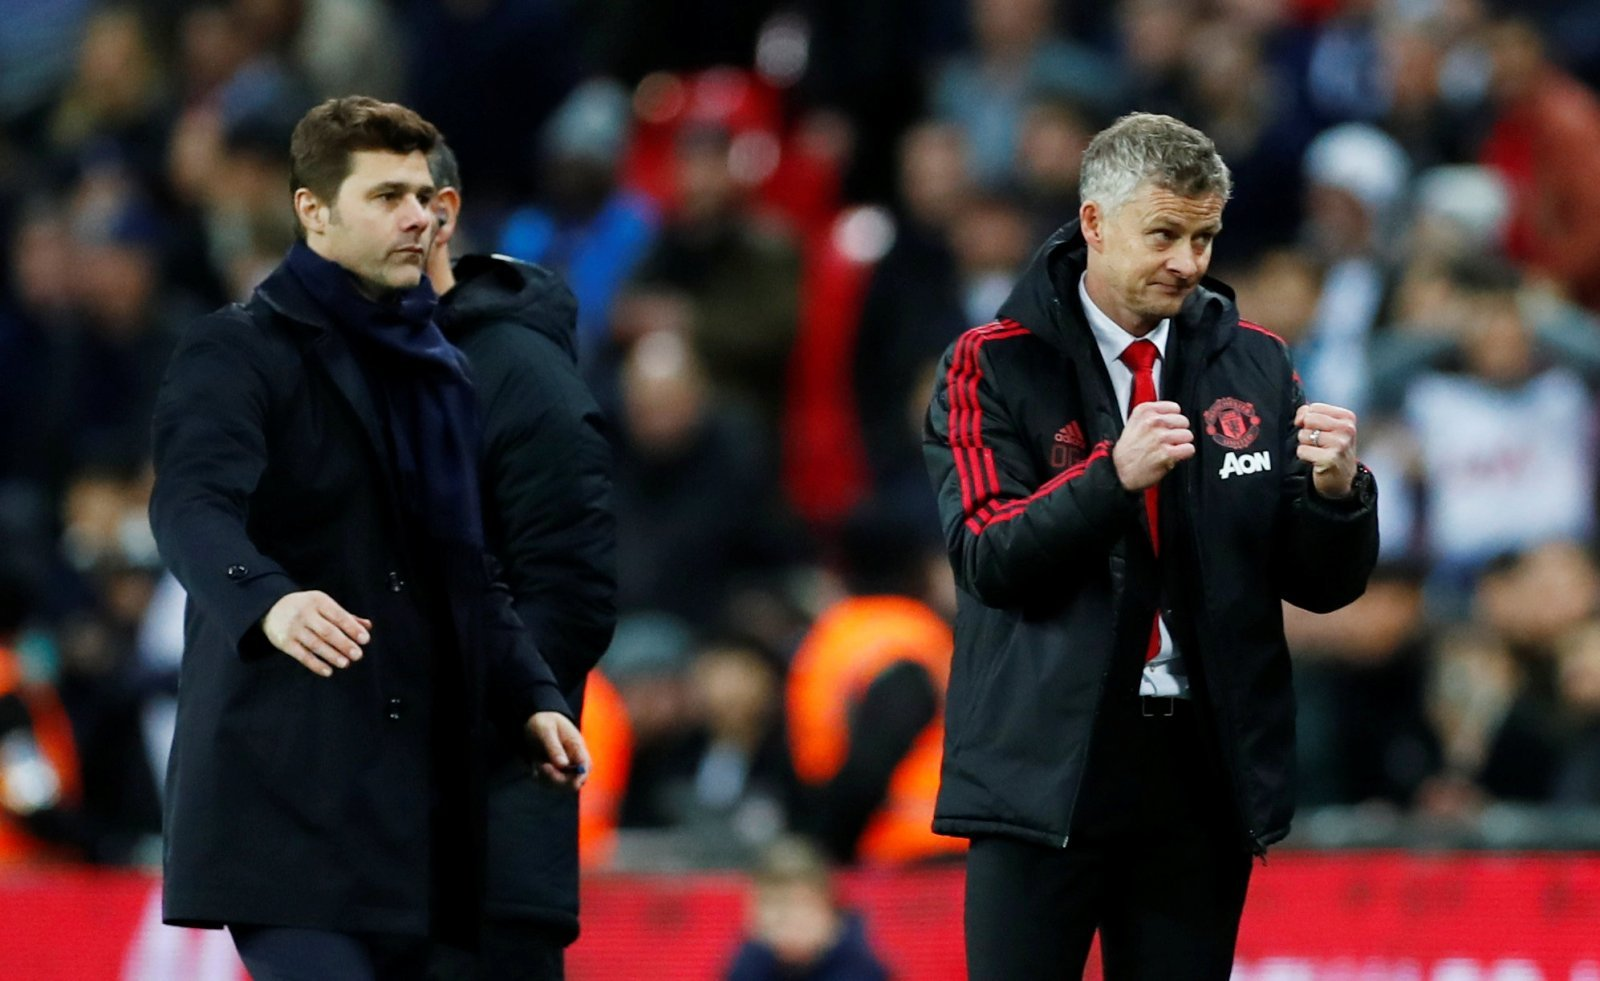 Manchester United: Fans outline perfect plan to appoint Pochettino and shift Ole for club's future